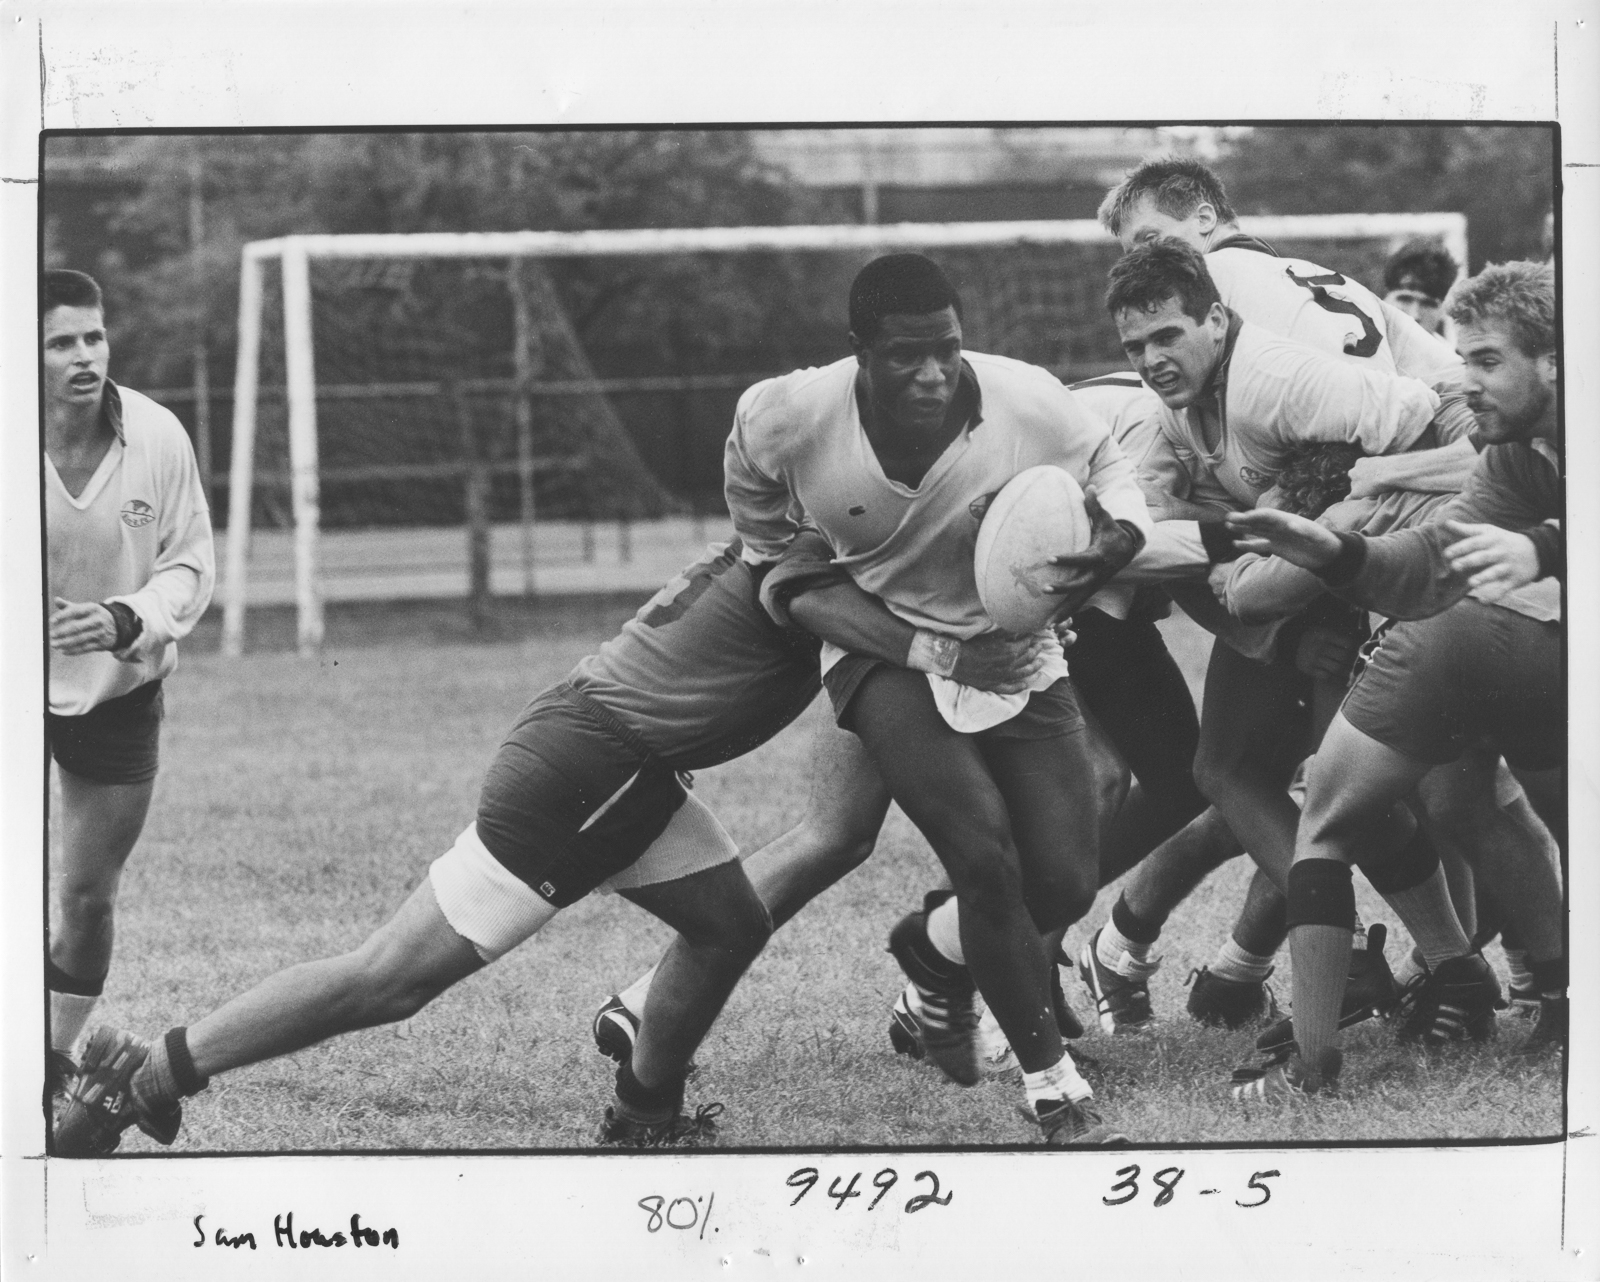 90.40 Sam Johnson - SJ 1990 Rice RFC (13 of 16).jpg